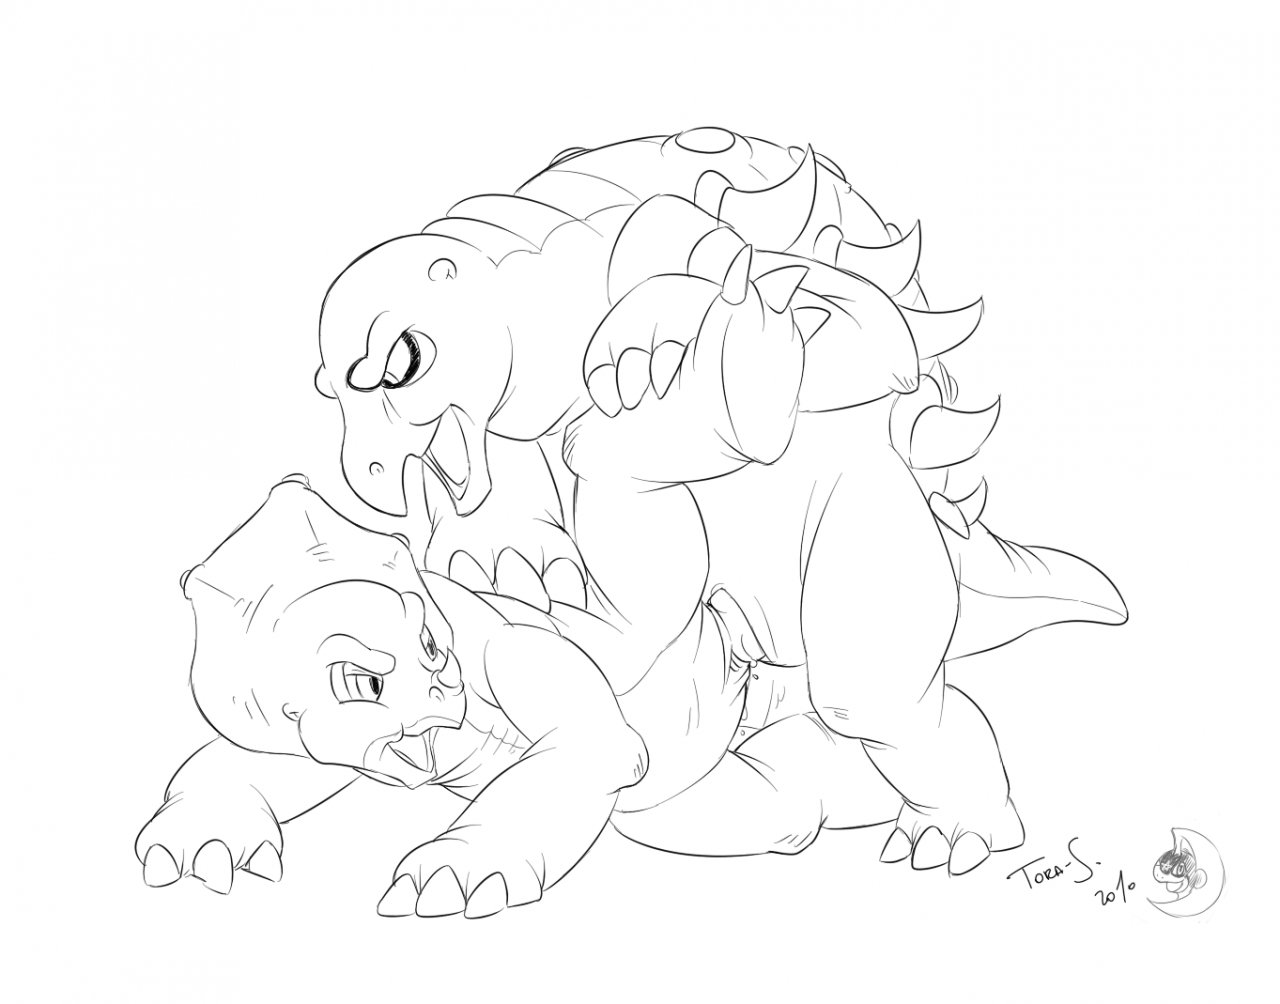 land before time the spike Avatar the last airbender blowjob